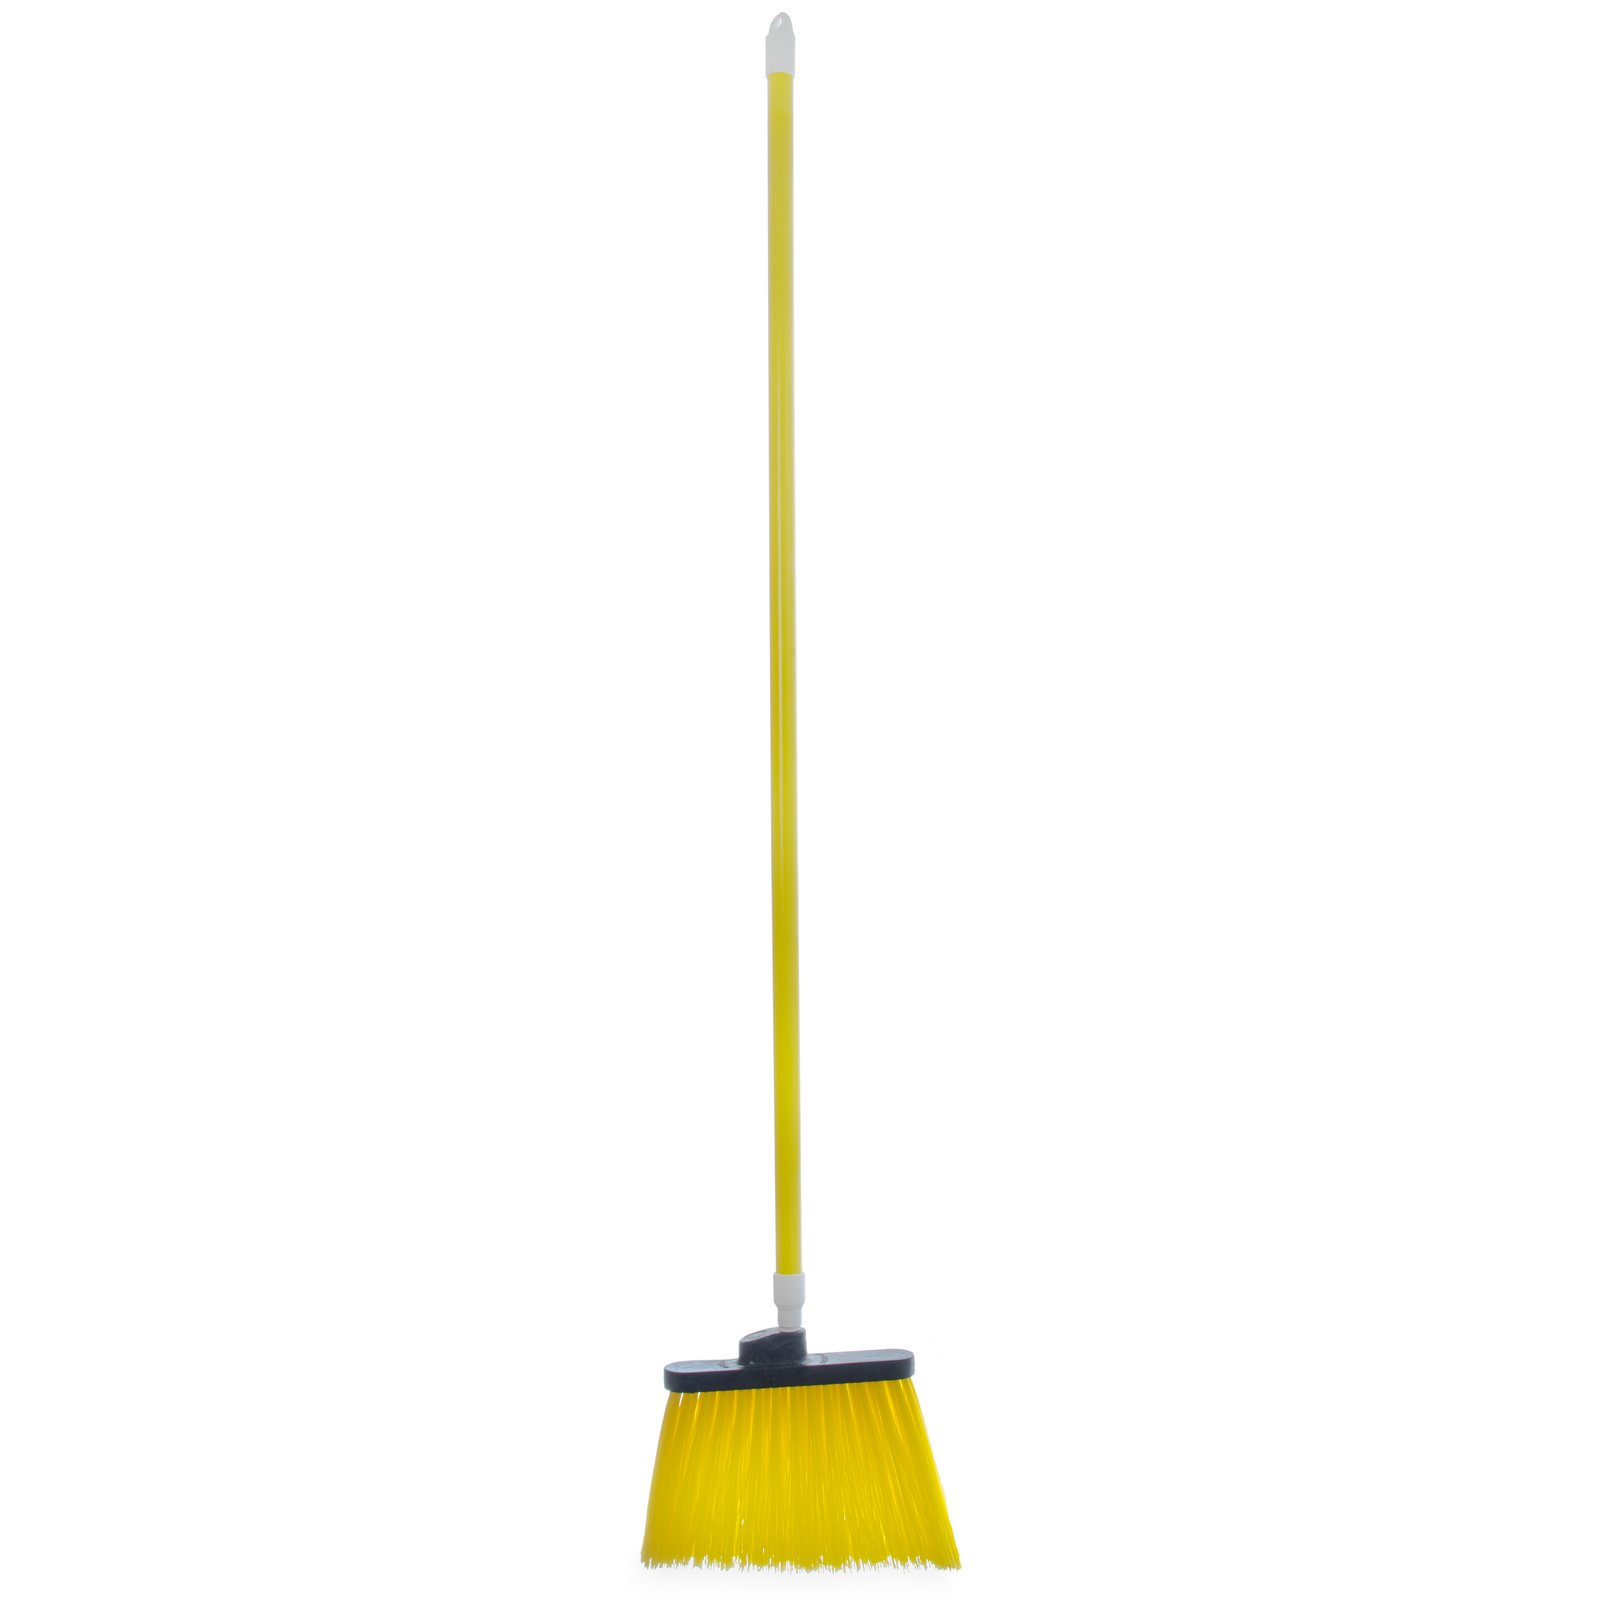 "BROOM 54"" UNFLAGGED ANGLE W/ POLYPROPYLENE BRISTLES YELLOW"